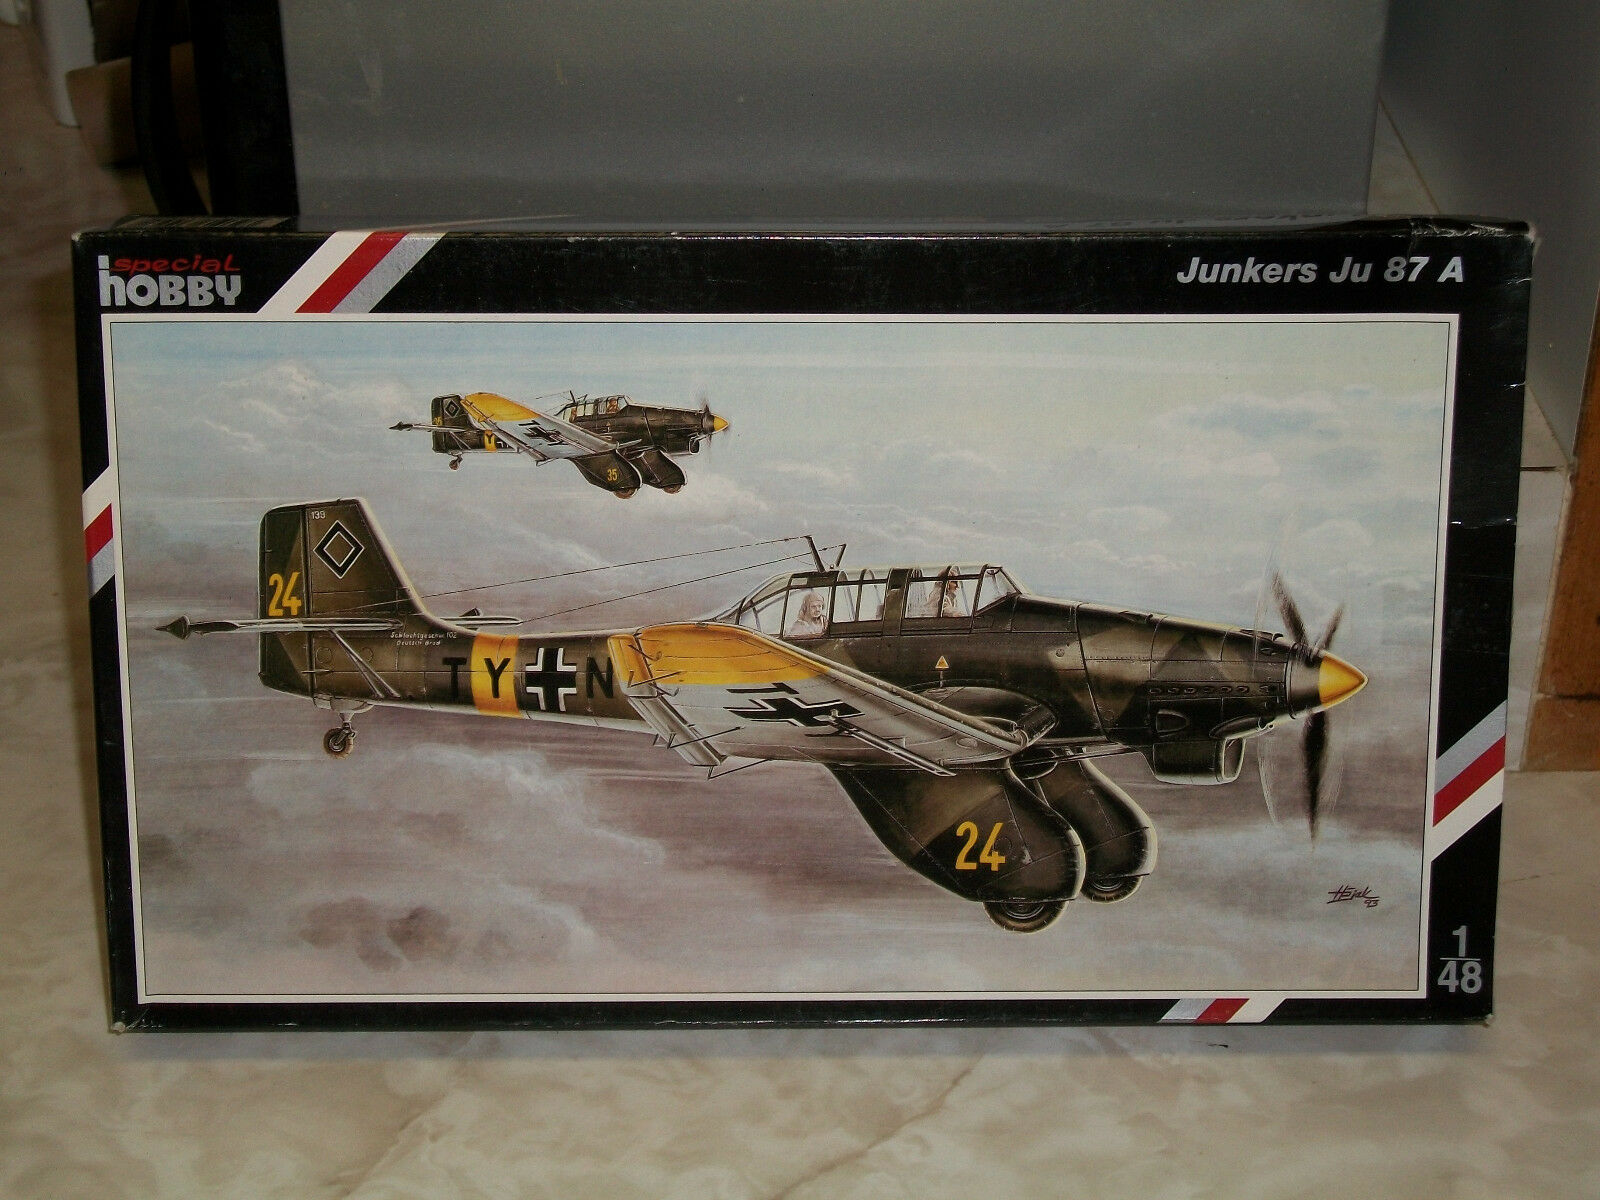 Special Hobby 1 48 Scale Junkers Ju 87A